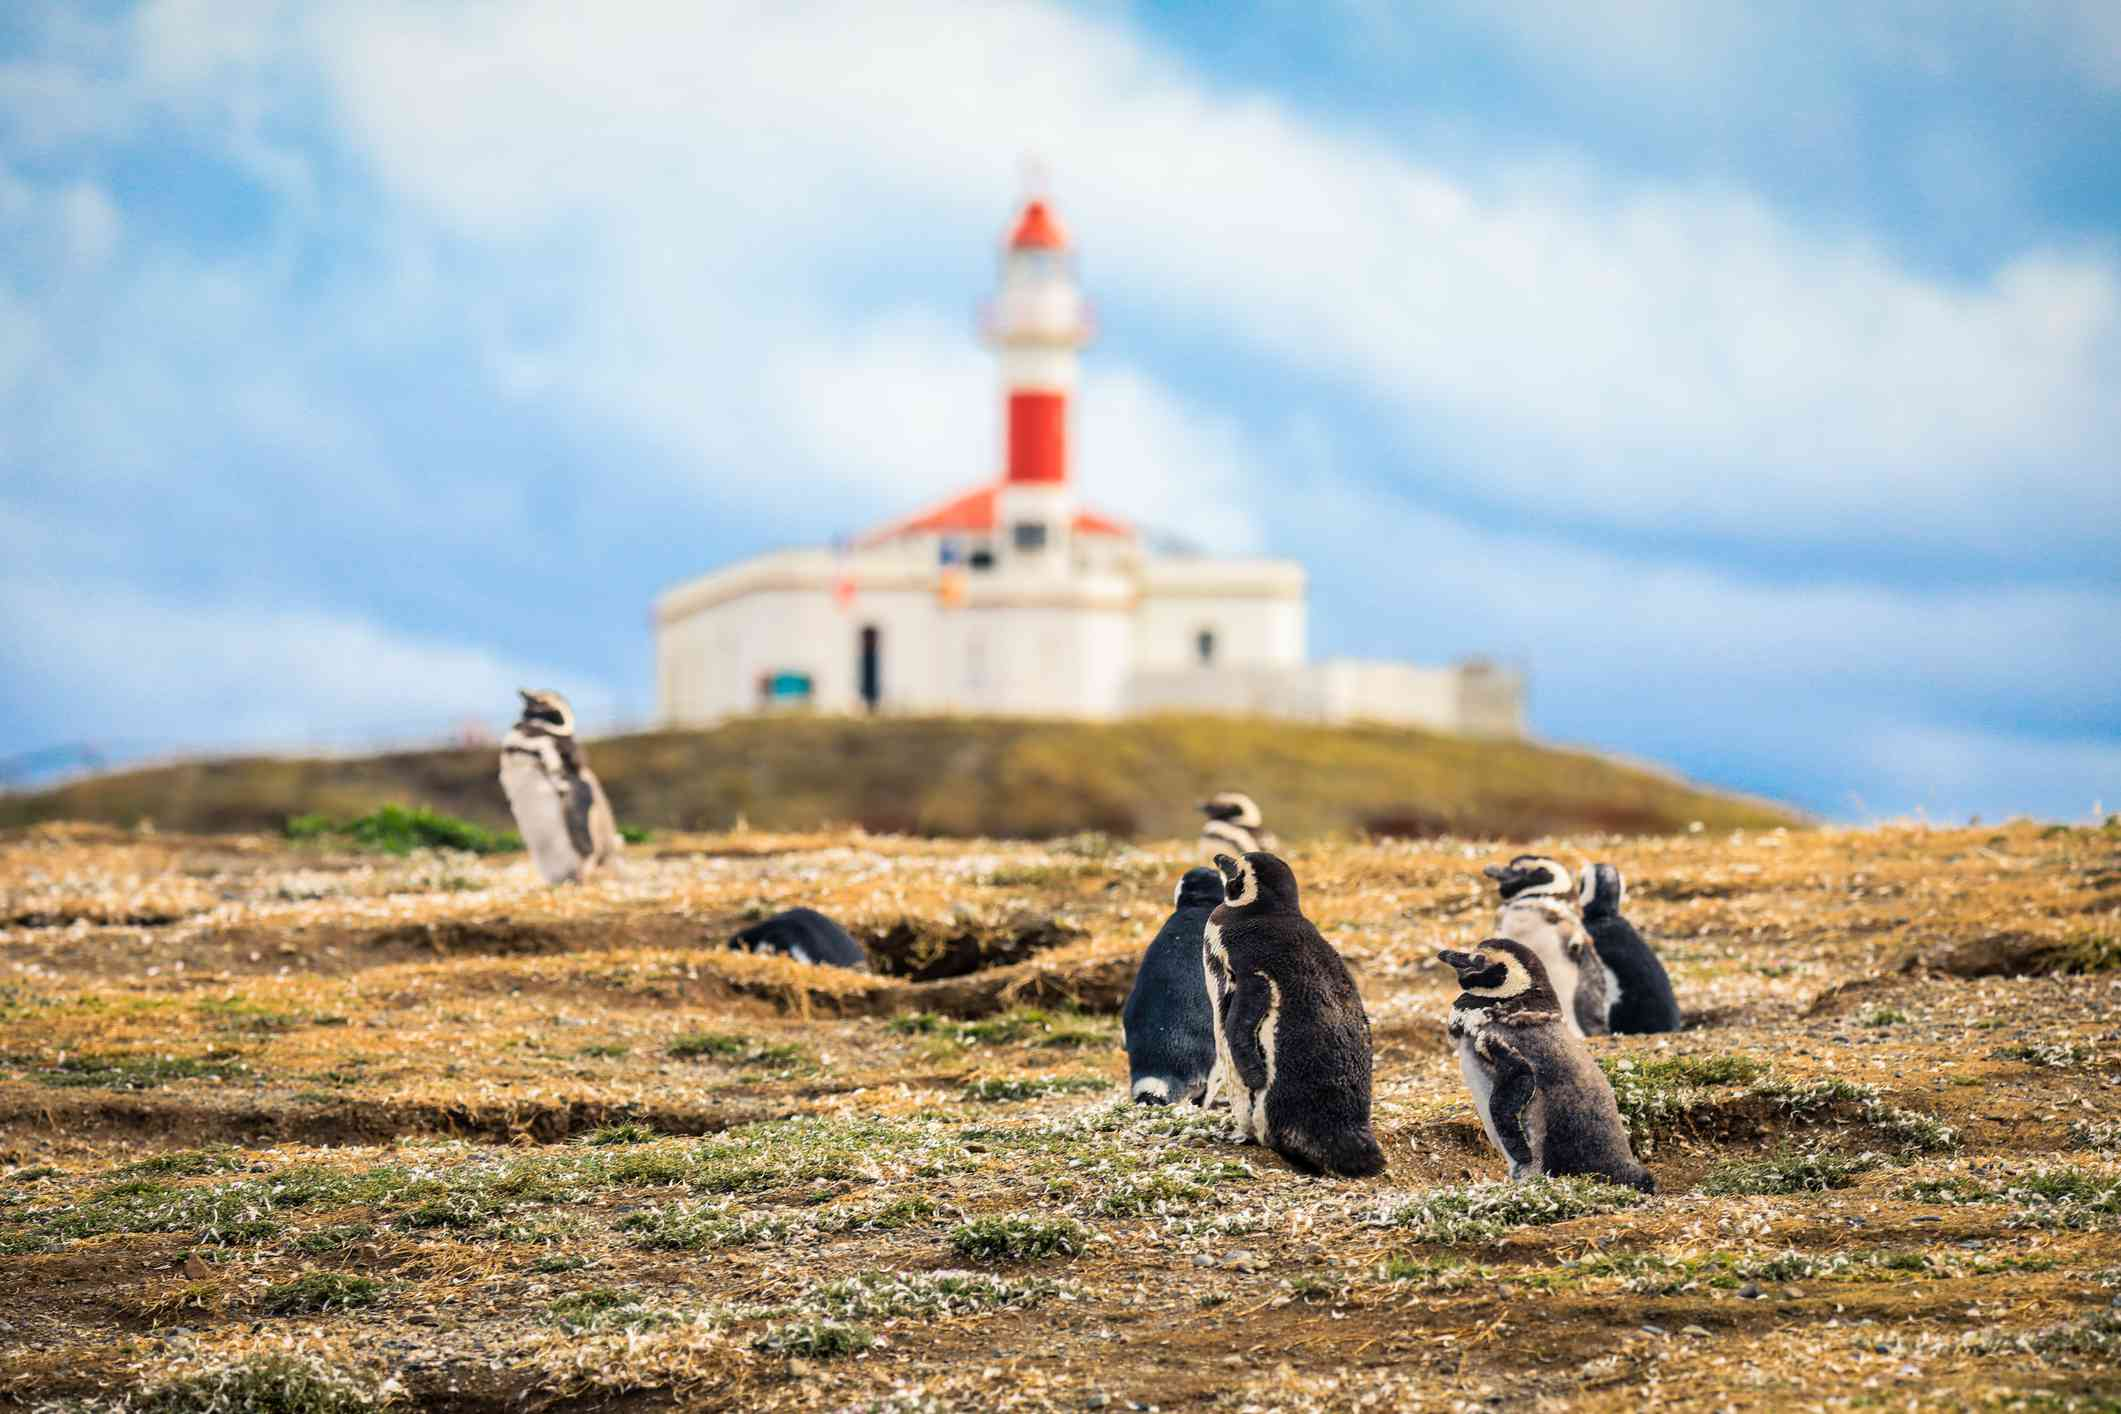 The Magellanic penguins with the Lighthouse of Magdalena Island background